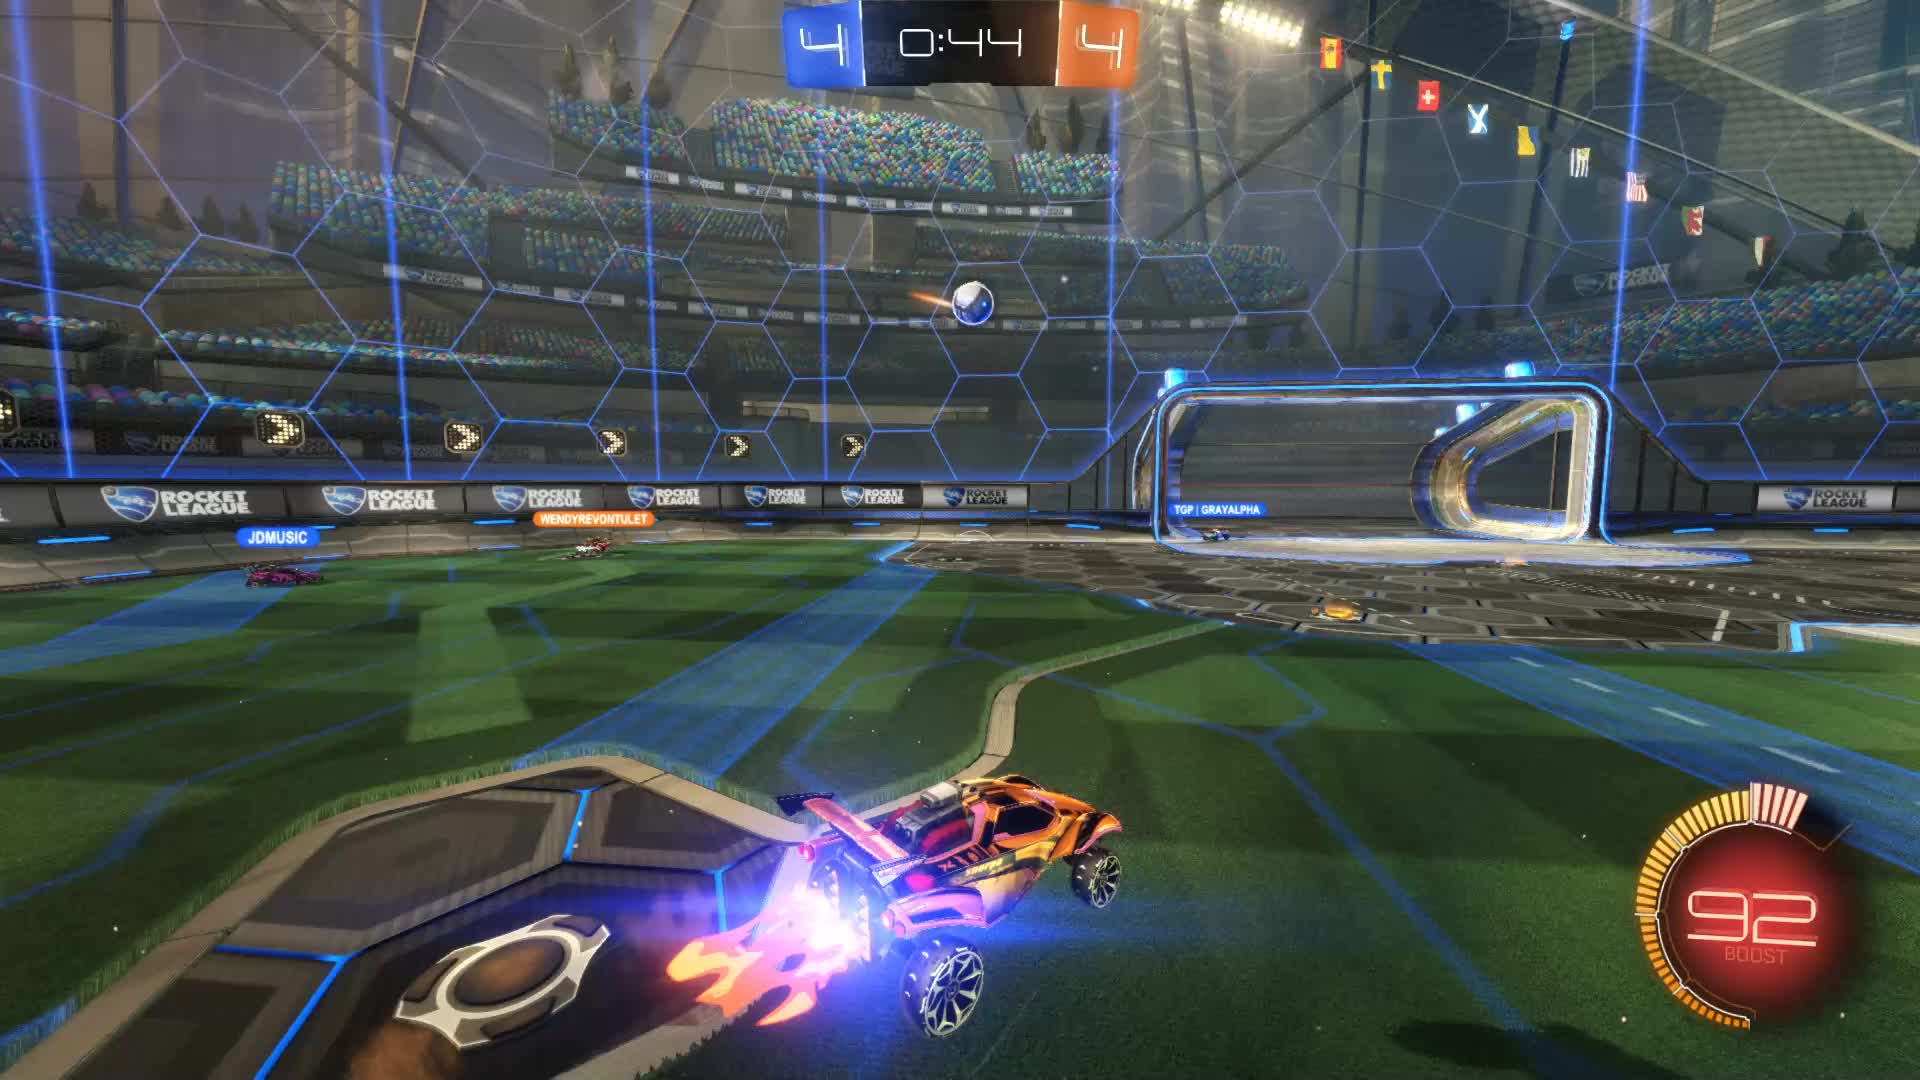 Gif Your Game, GifYourGame, Goal, Rocket League, RocketLeague, SCOTLAND FOREVER, Goal 9: SCOTLAND FOREVER GIFs